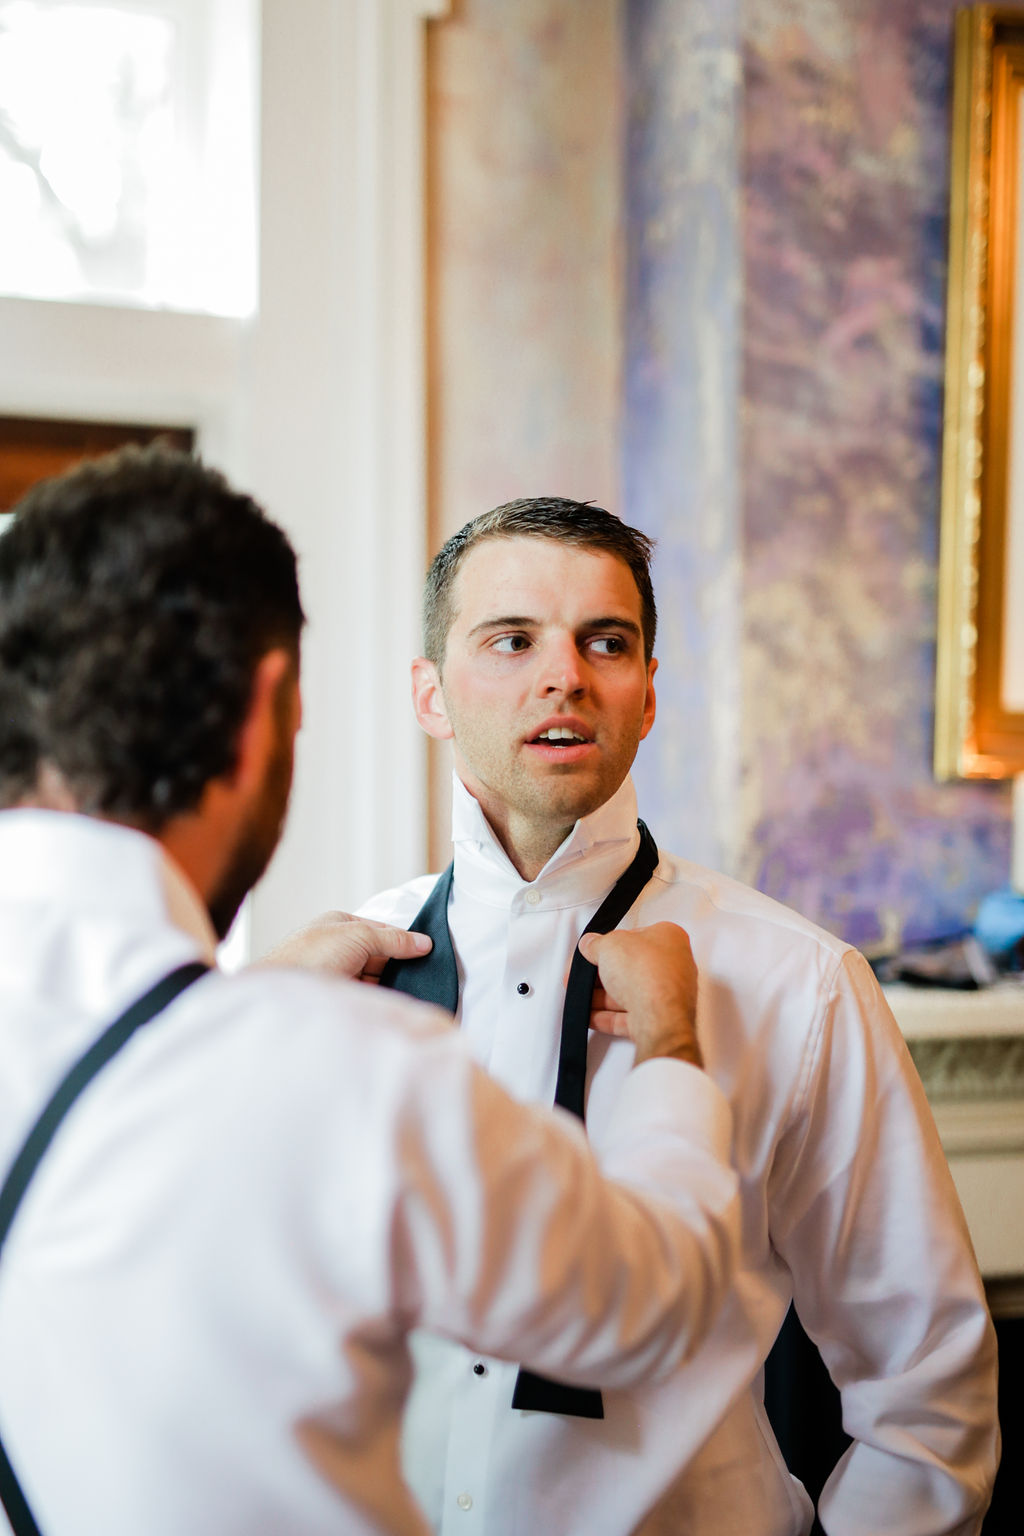 Grooms Portrait by Maria Gloer Photography